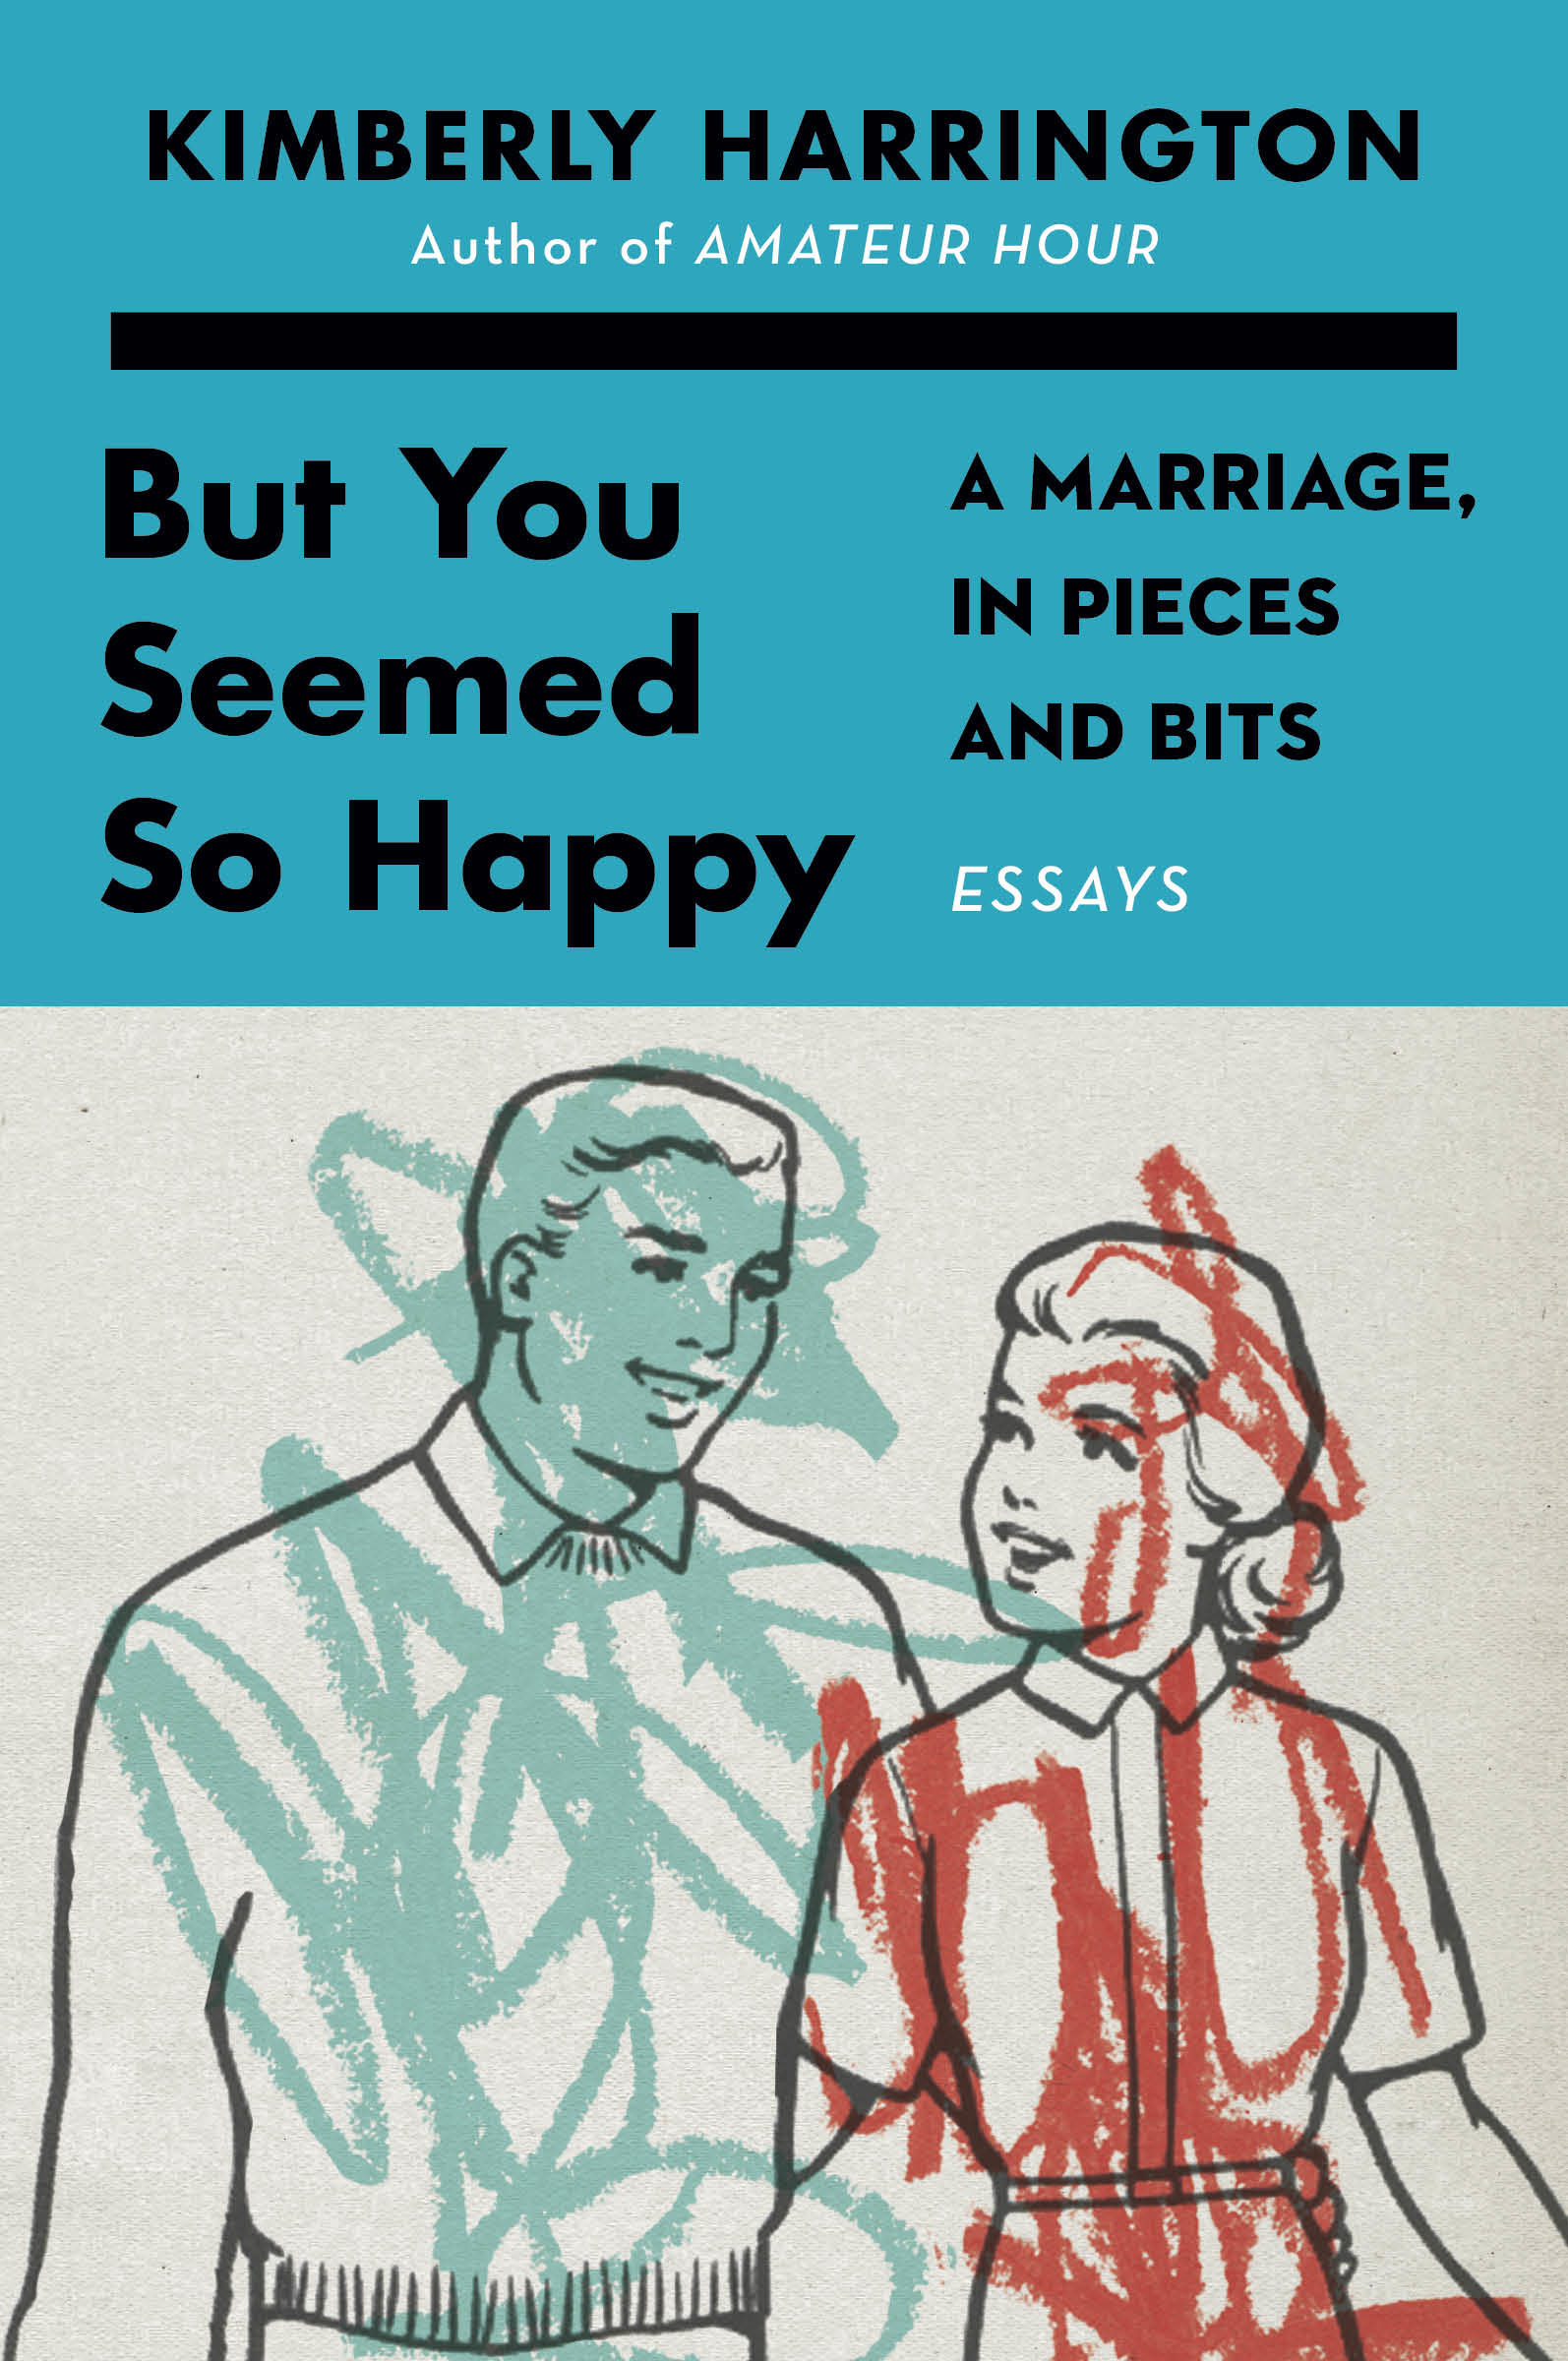 Book Launch: But You Seemed So Happy by Kimberly Harrington in conversation with Emily Flake